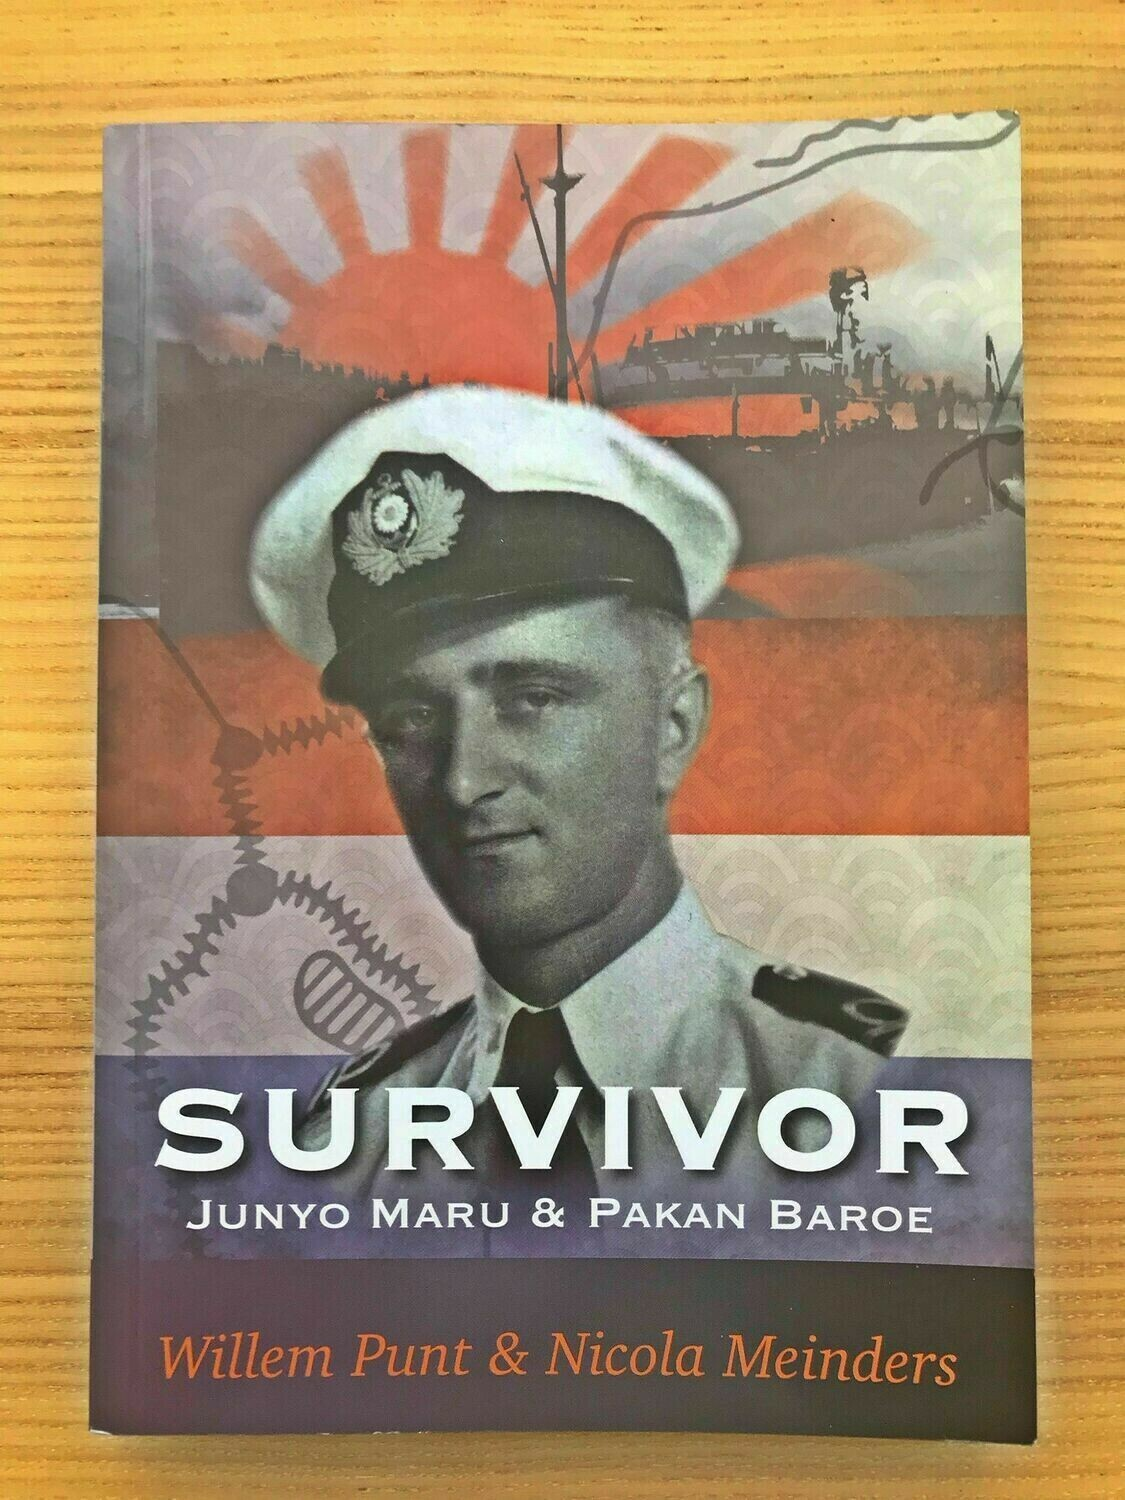 English Version - In Stock - Survivor - The Story of Willem Punt